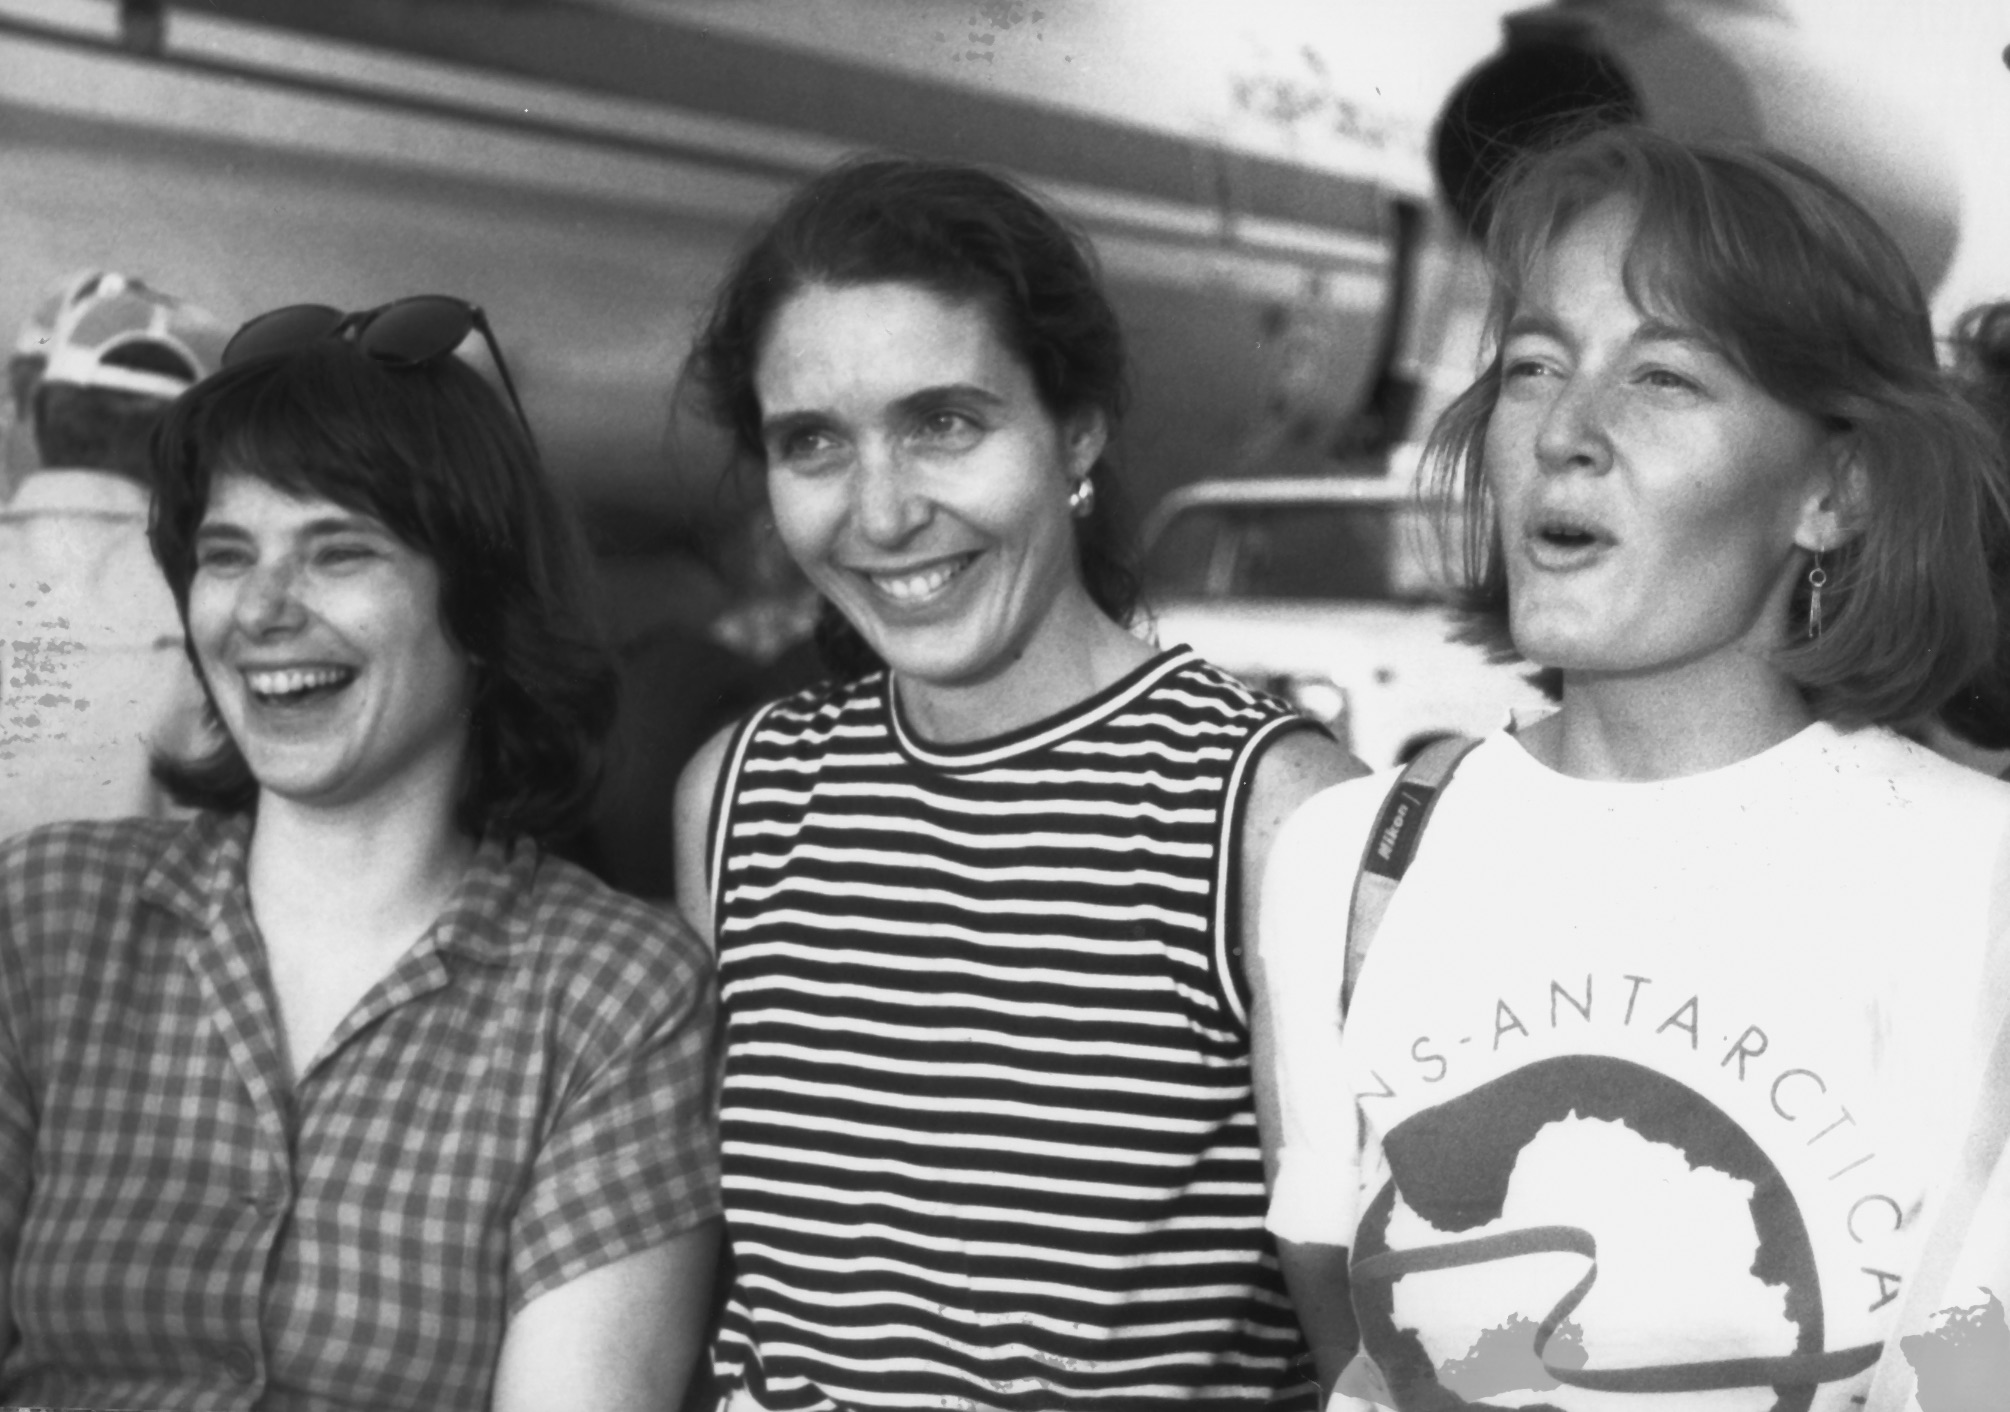 Cathy de Moll, Cynthia Mueller and Jennifer Gasperini on the Minneapolis tarmac as the Illuyshin prepares to leave for Antarctica. July 16, 1989. Photographer unknown.